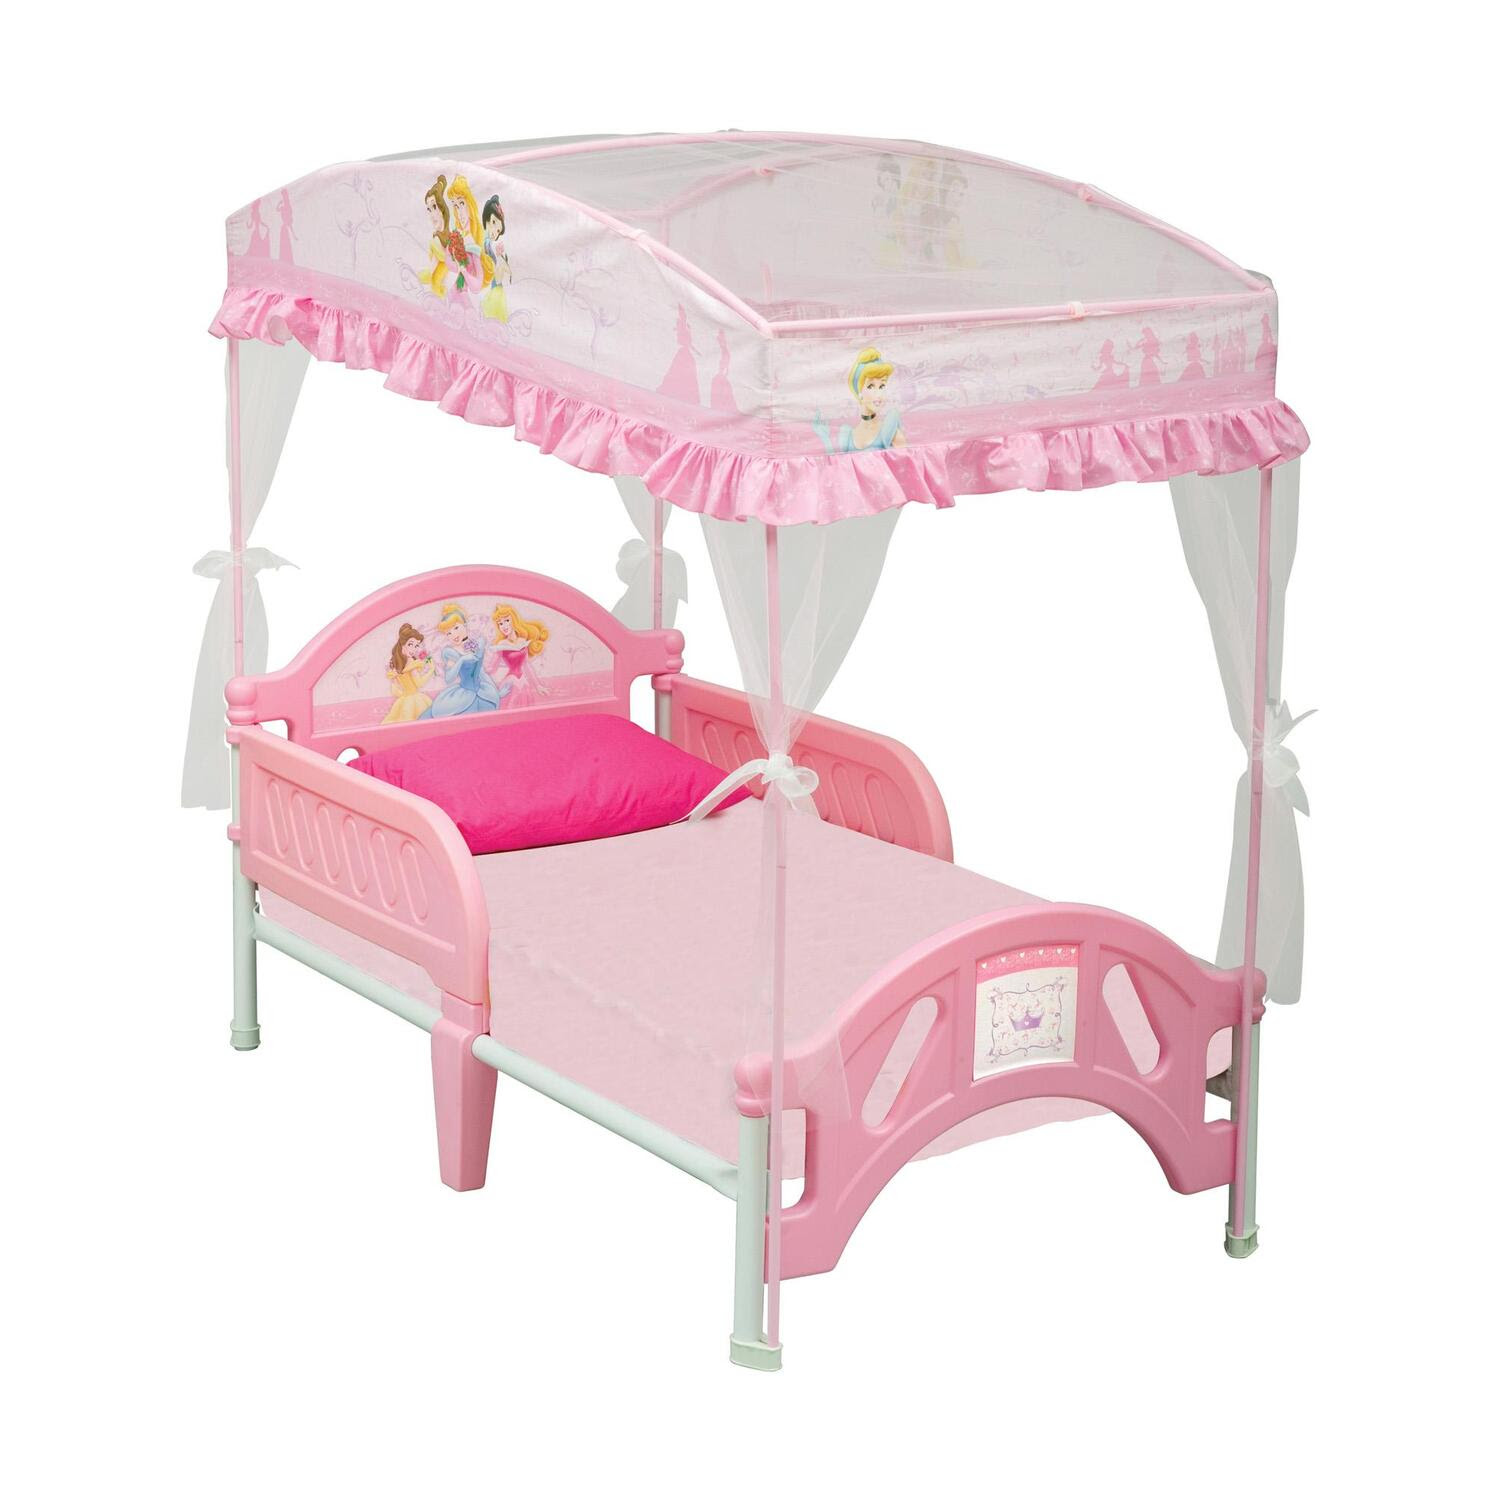 DISNEY PRINCESS BED CANOPY TENT | bed canopy